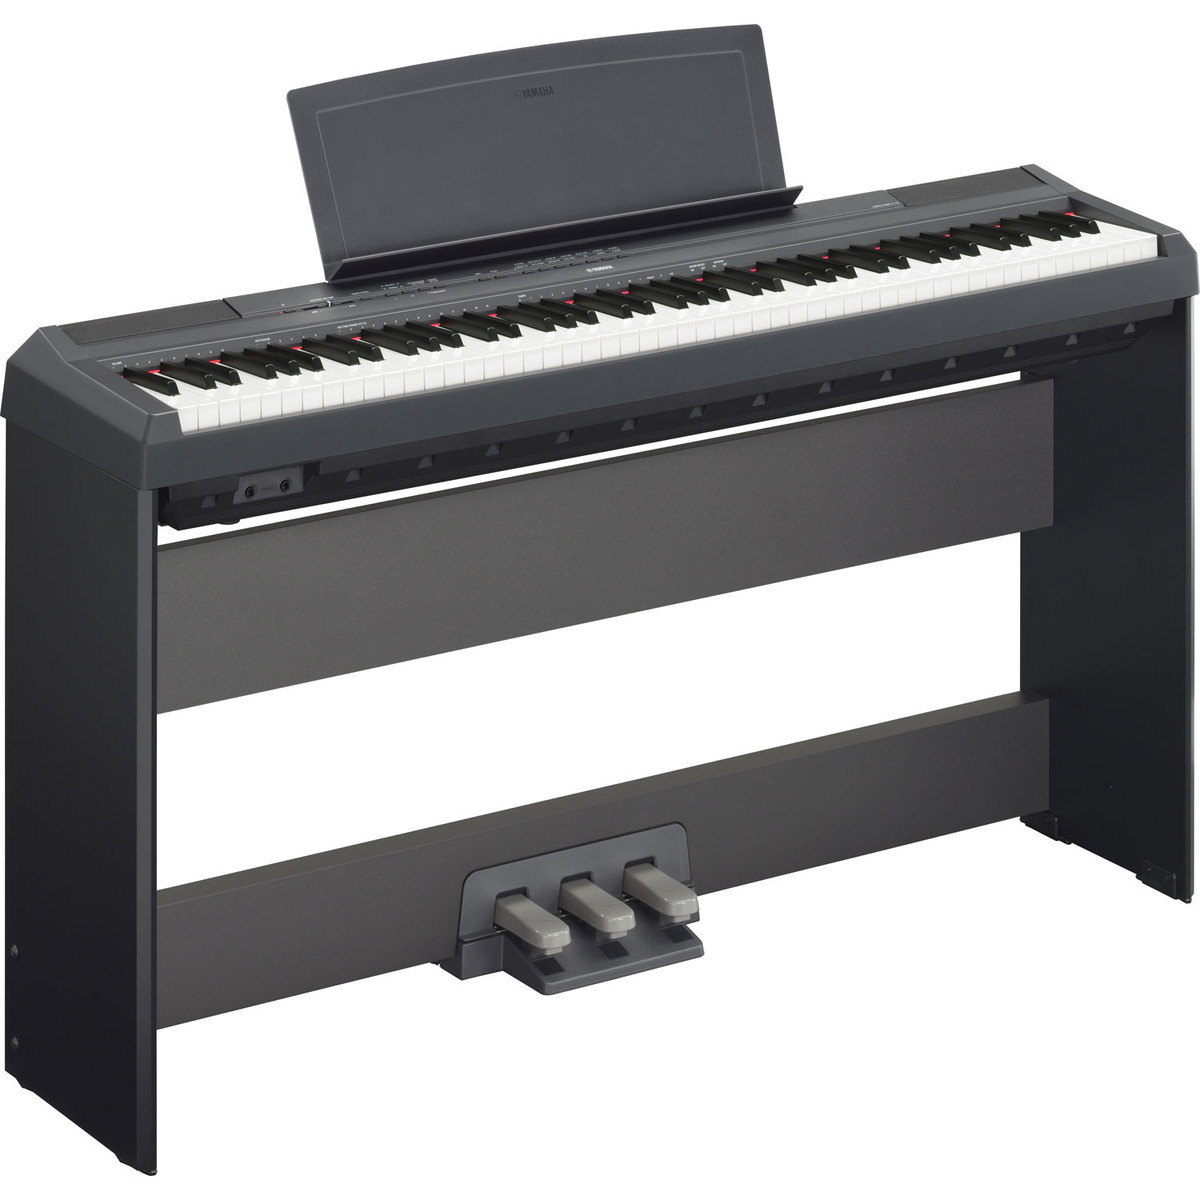 yamaha p115 piano num rique noir comme neuf gear4music. Black Bedroom Furniture Sets. Home Design Ideas